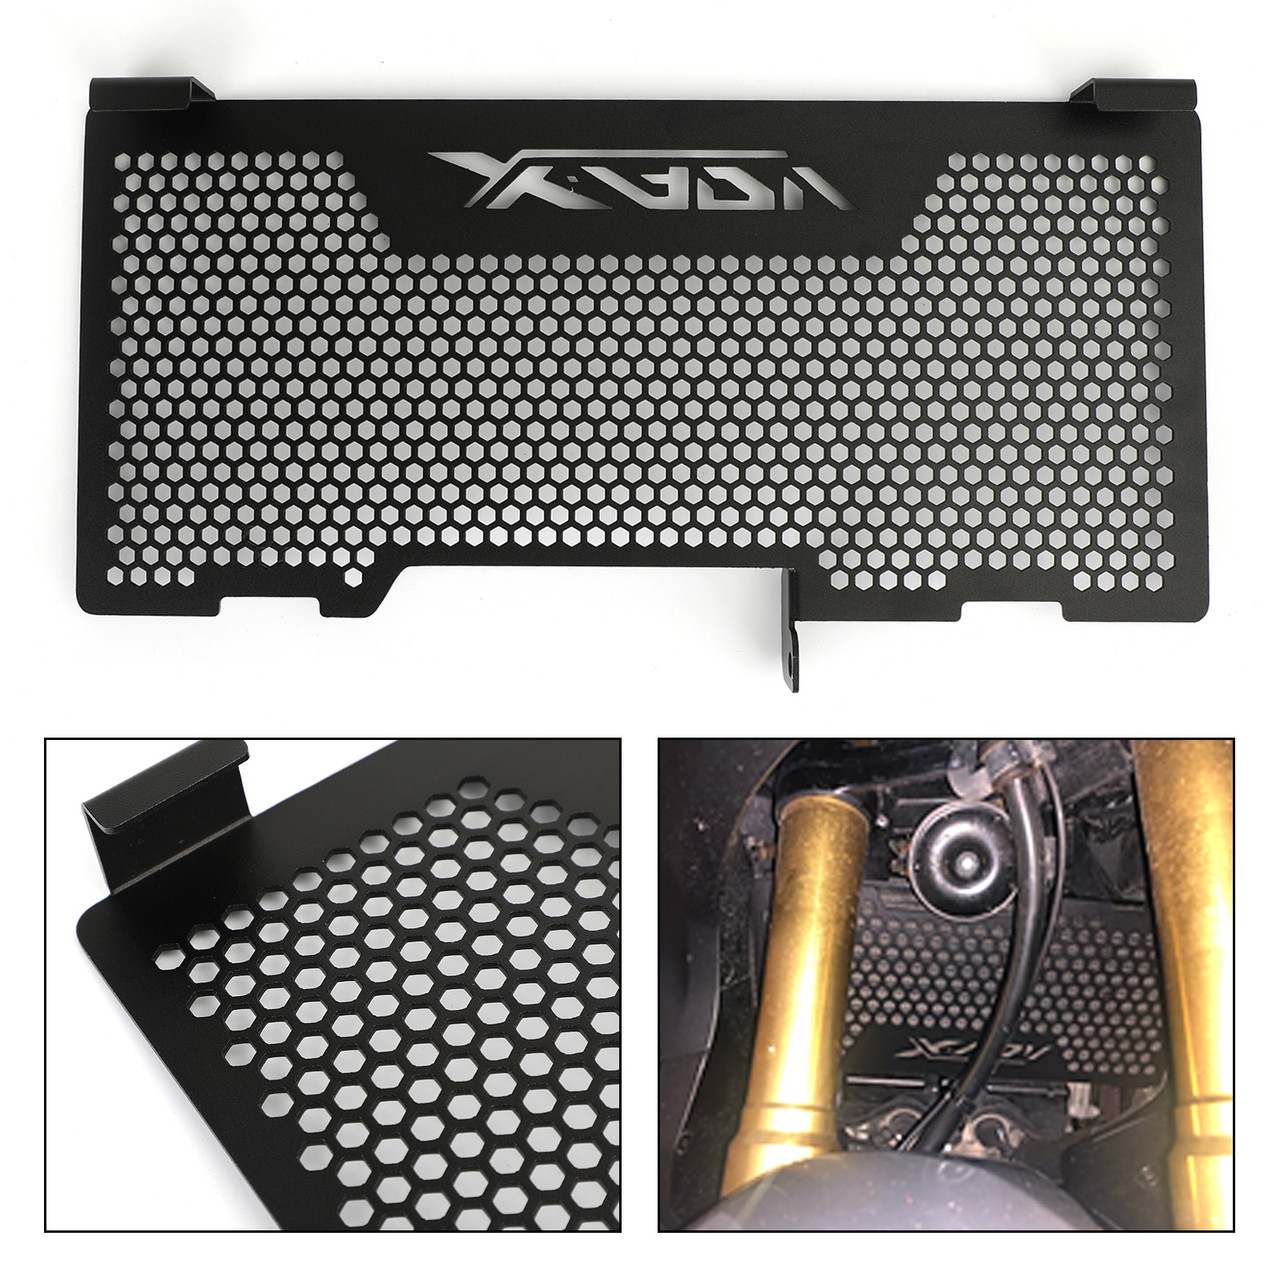 Stainless Steel Radiator Guard Protector Grill Cover For Honda X-ADV 750 17-18 Black